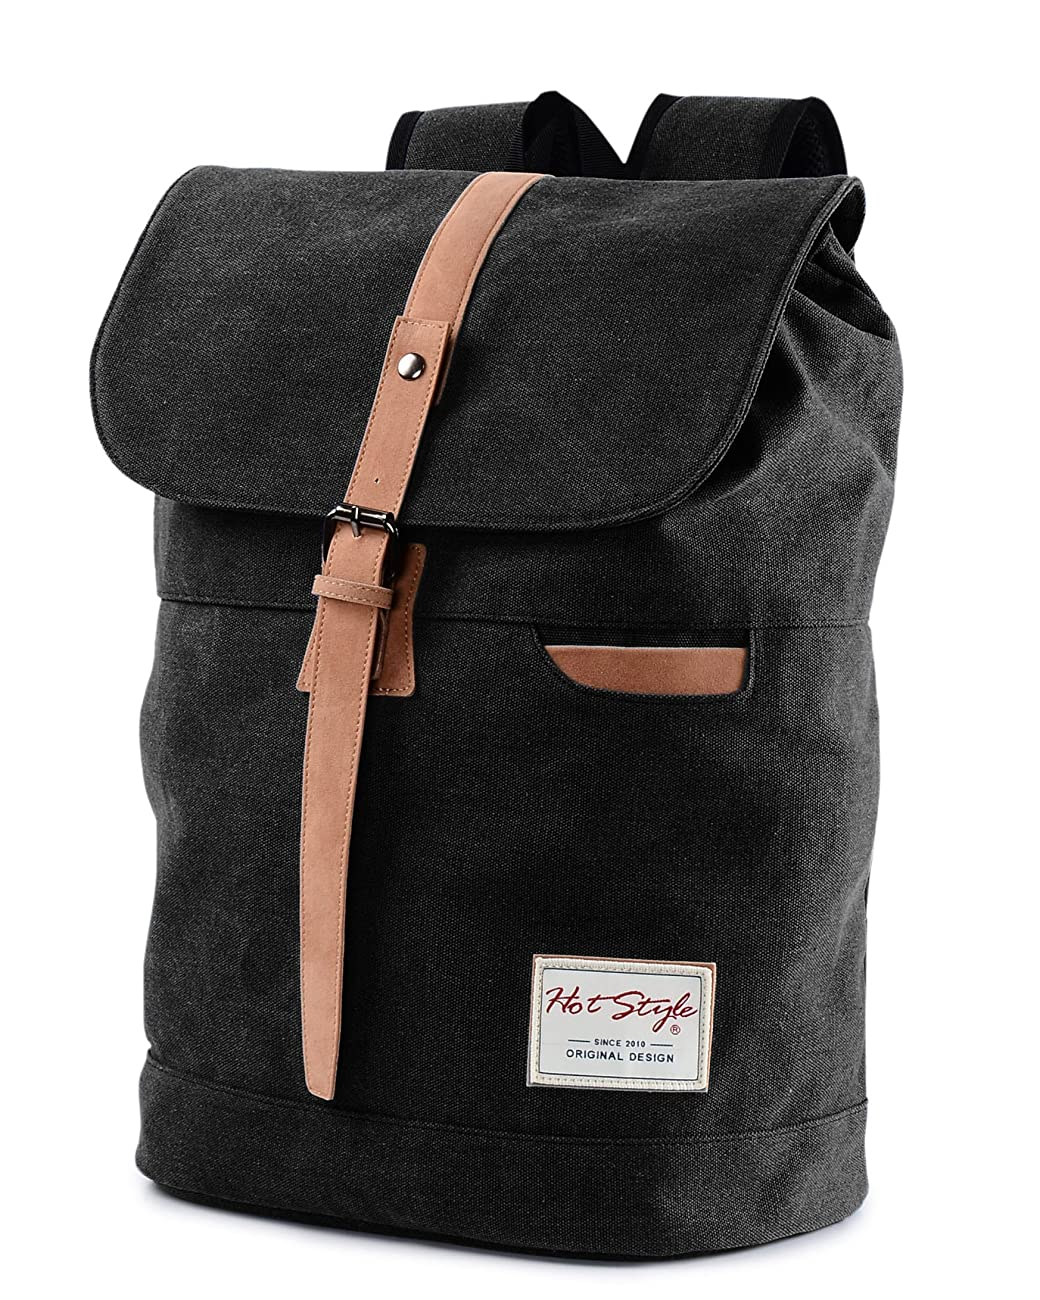 Vintage Canvas Backpack - HotStyle Waterpoof Travel Rucksack Fits 15.6 inch Laptop - Black 0